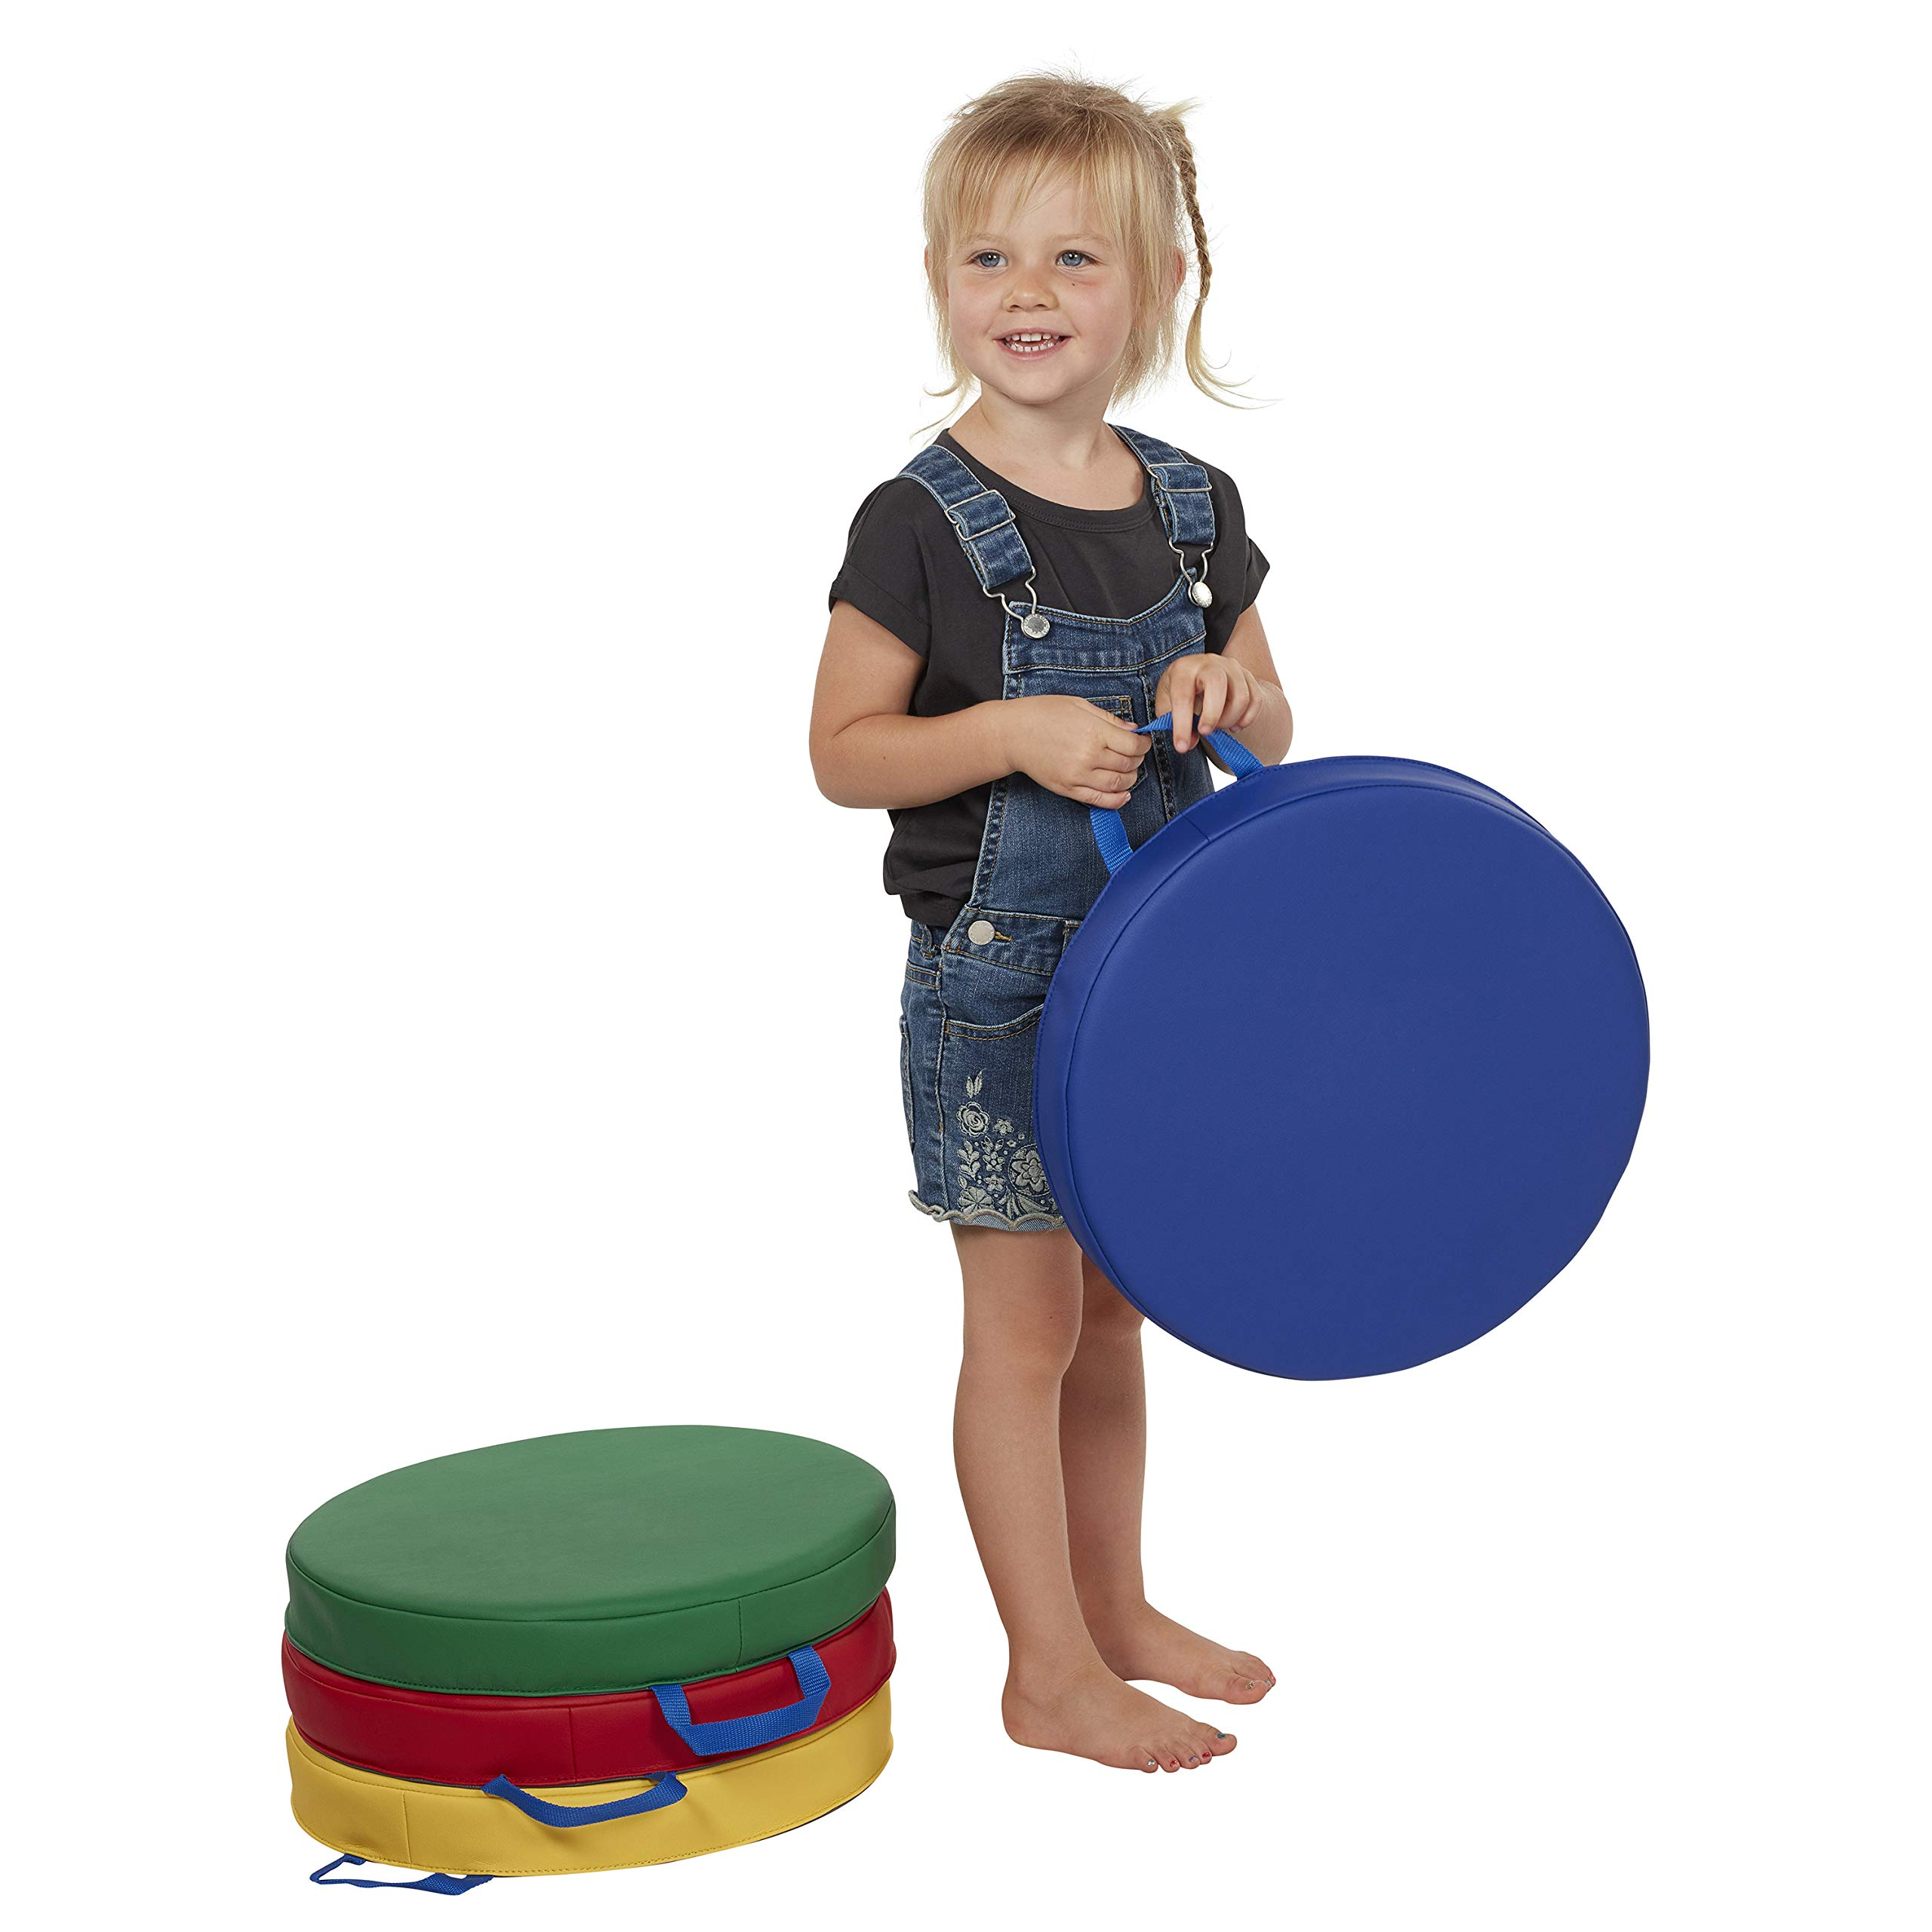 ECR4Kids SoftZone Cozy Floor Seat Cushions with Handles, 2'' Deluxe Foam, Flexible Classroom Story Time Seating for Toddlers and Kids, Round, Assorted Colors (4-Pack)